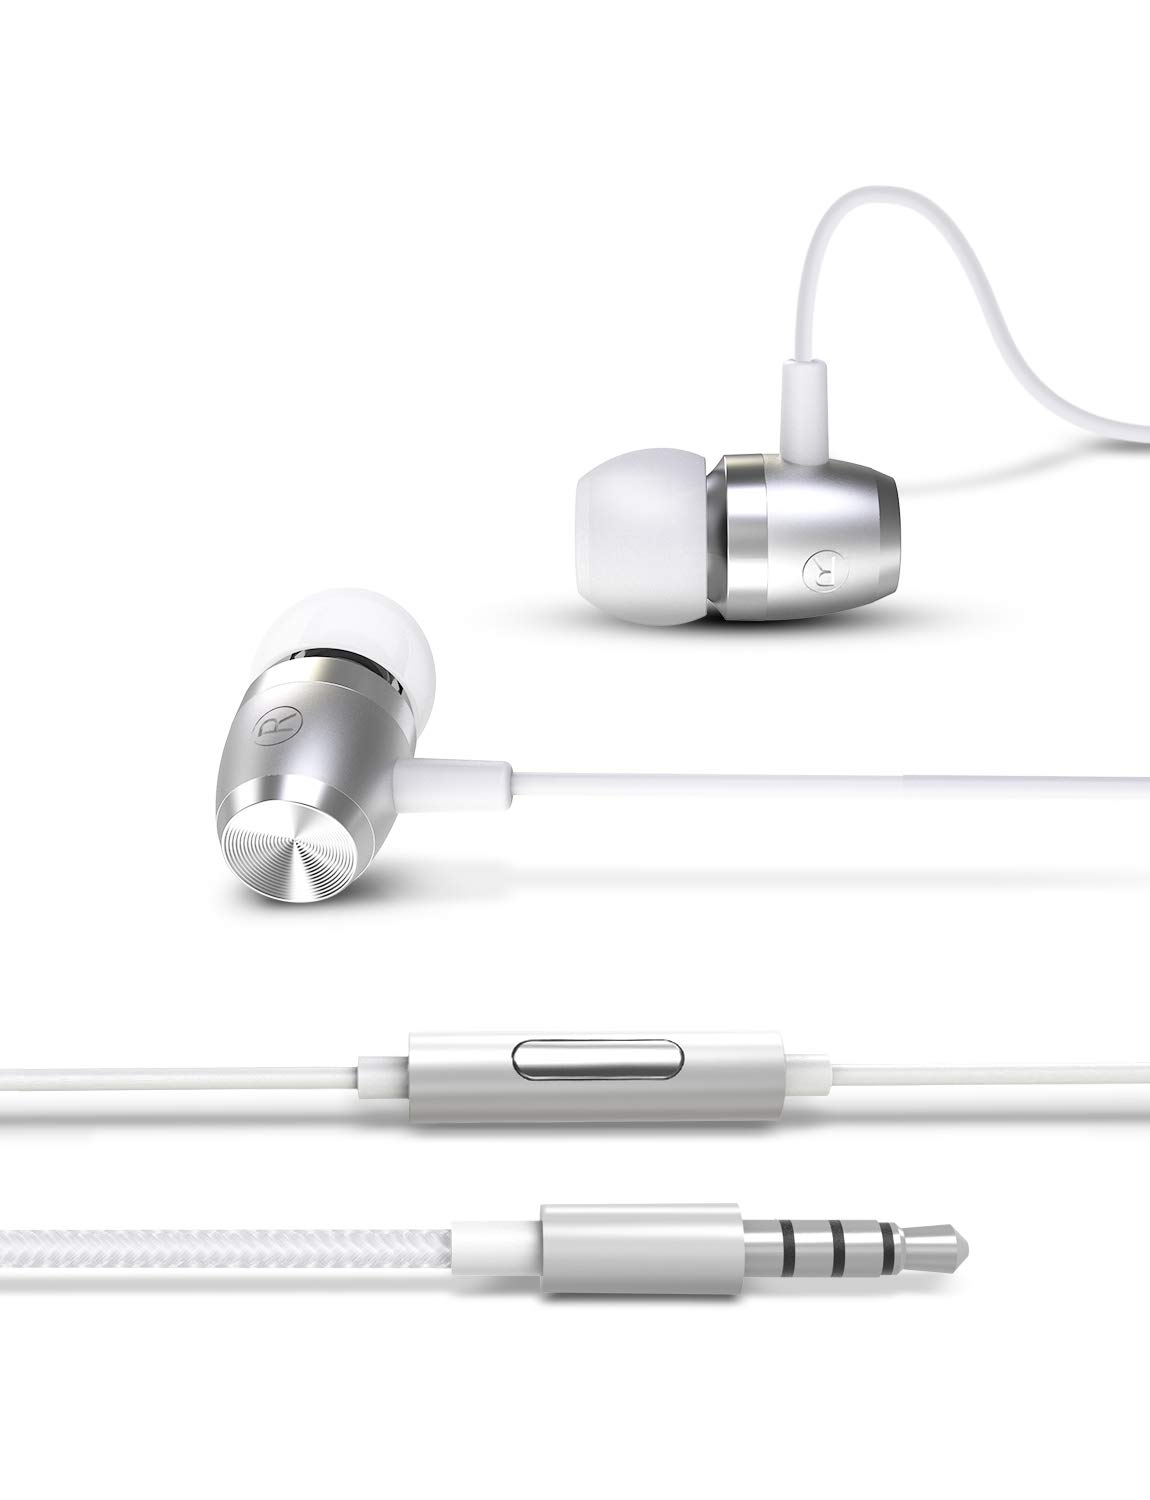 Earphones Headphones with Microphone and Call Controller Bass in-Ear Wired Earbuds Noise Canceling Headphones for iPhone, iPad, Samsung, MP3 Players, Nokia, HTC, Nexus, BlackBerry(Silver)